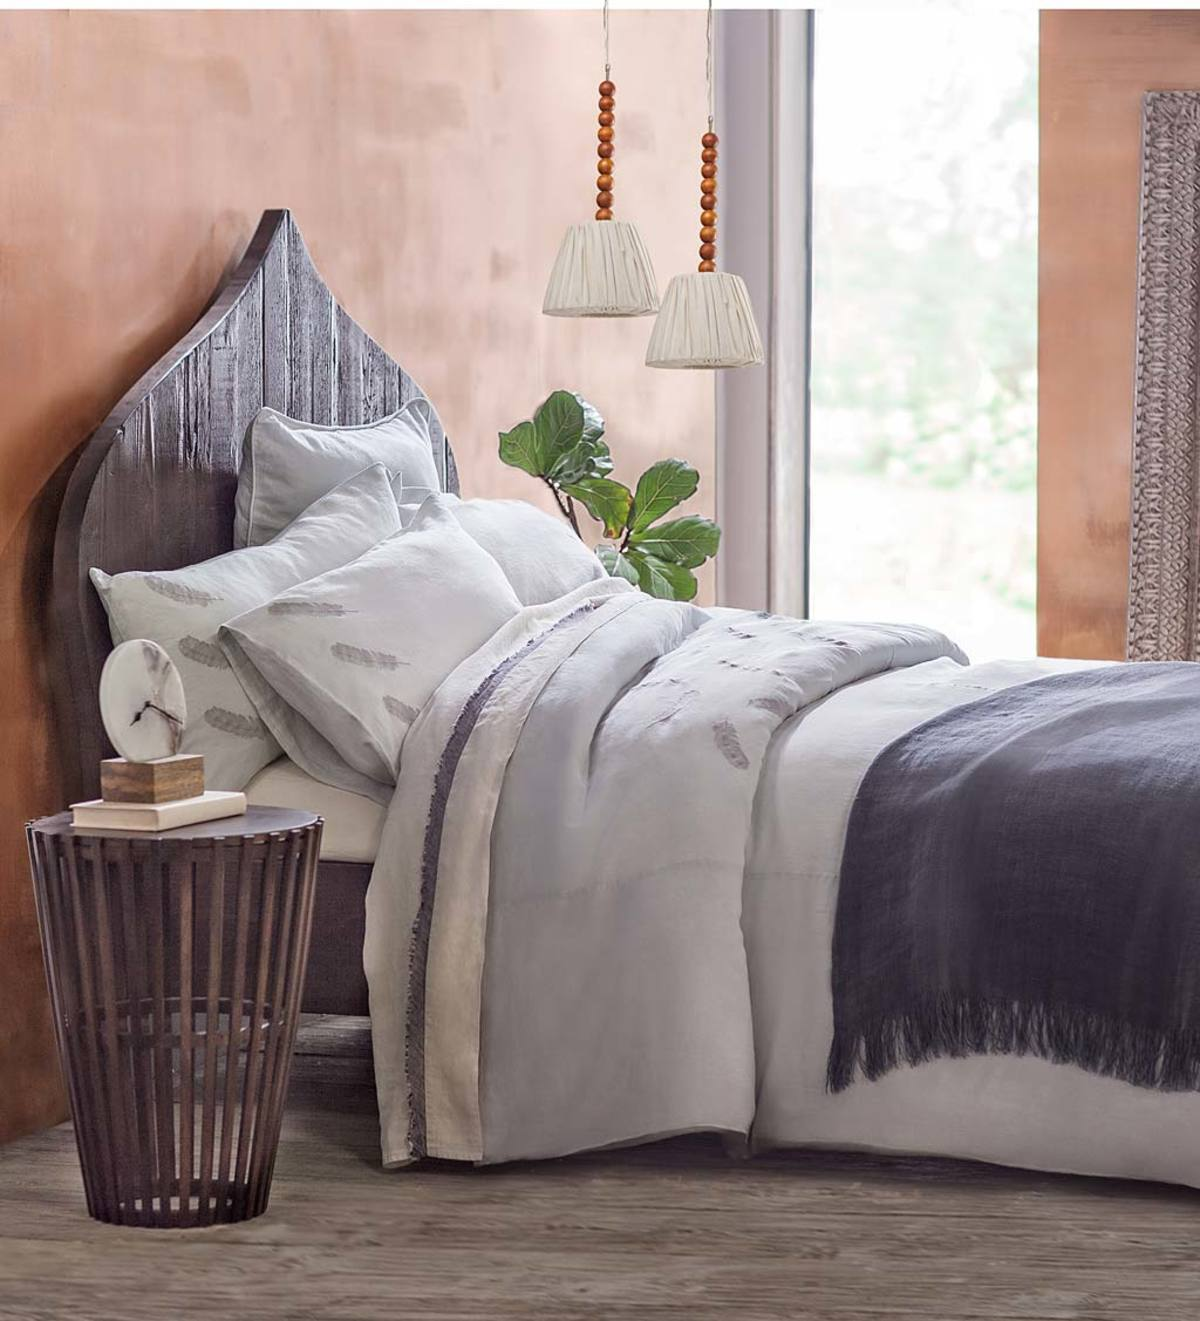 Feather Embroidered Linen Duvet Set and Shams